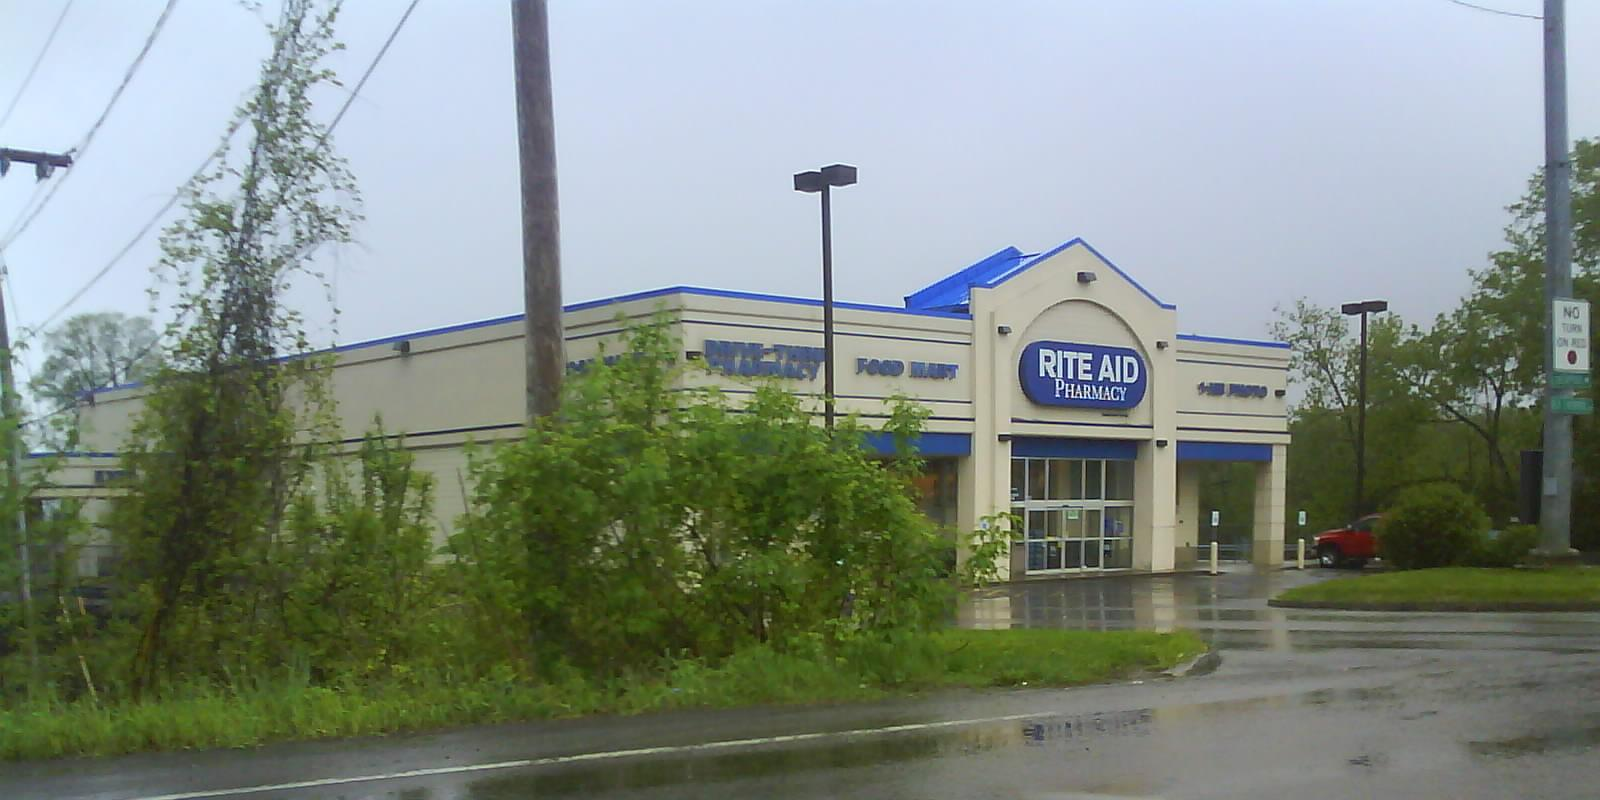 architecture branding eckerd pioneering spirit leaves built rite aid